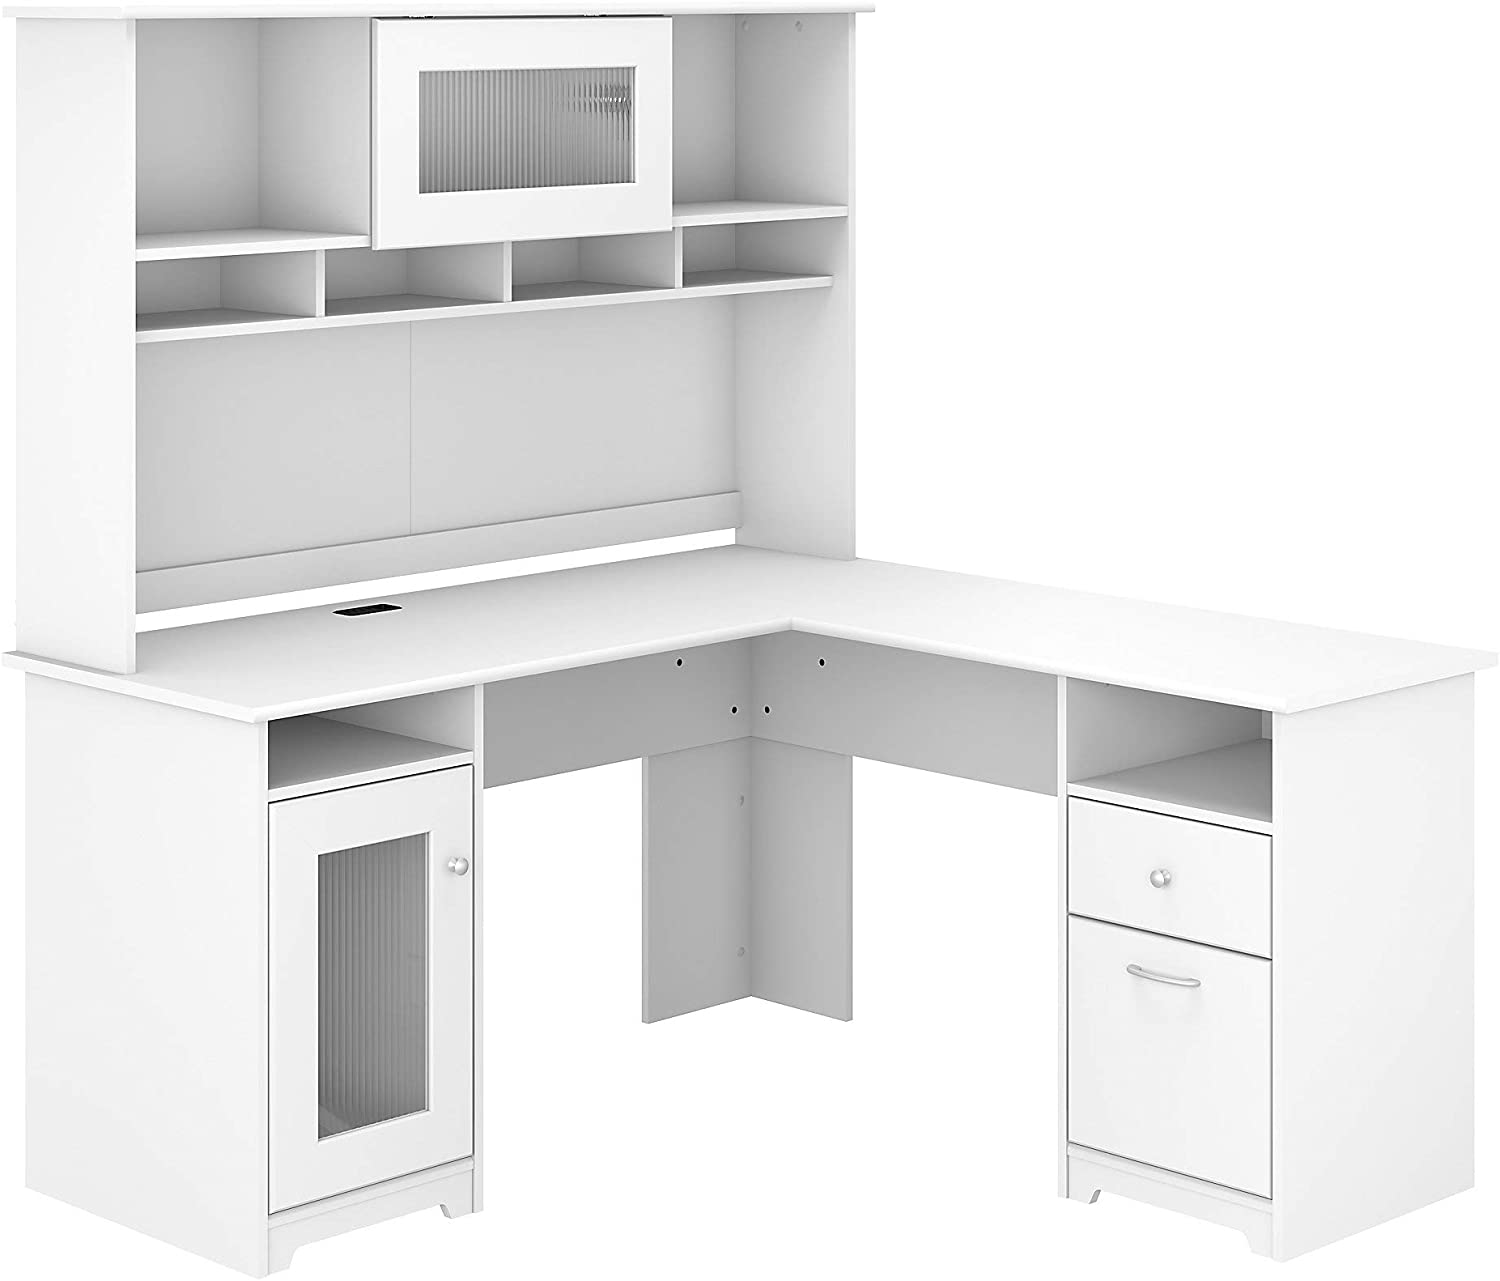 Bush Furniture Cabot 2021 60W Max 61% OFF L Shaped with Whit Hutch Computer Desk